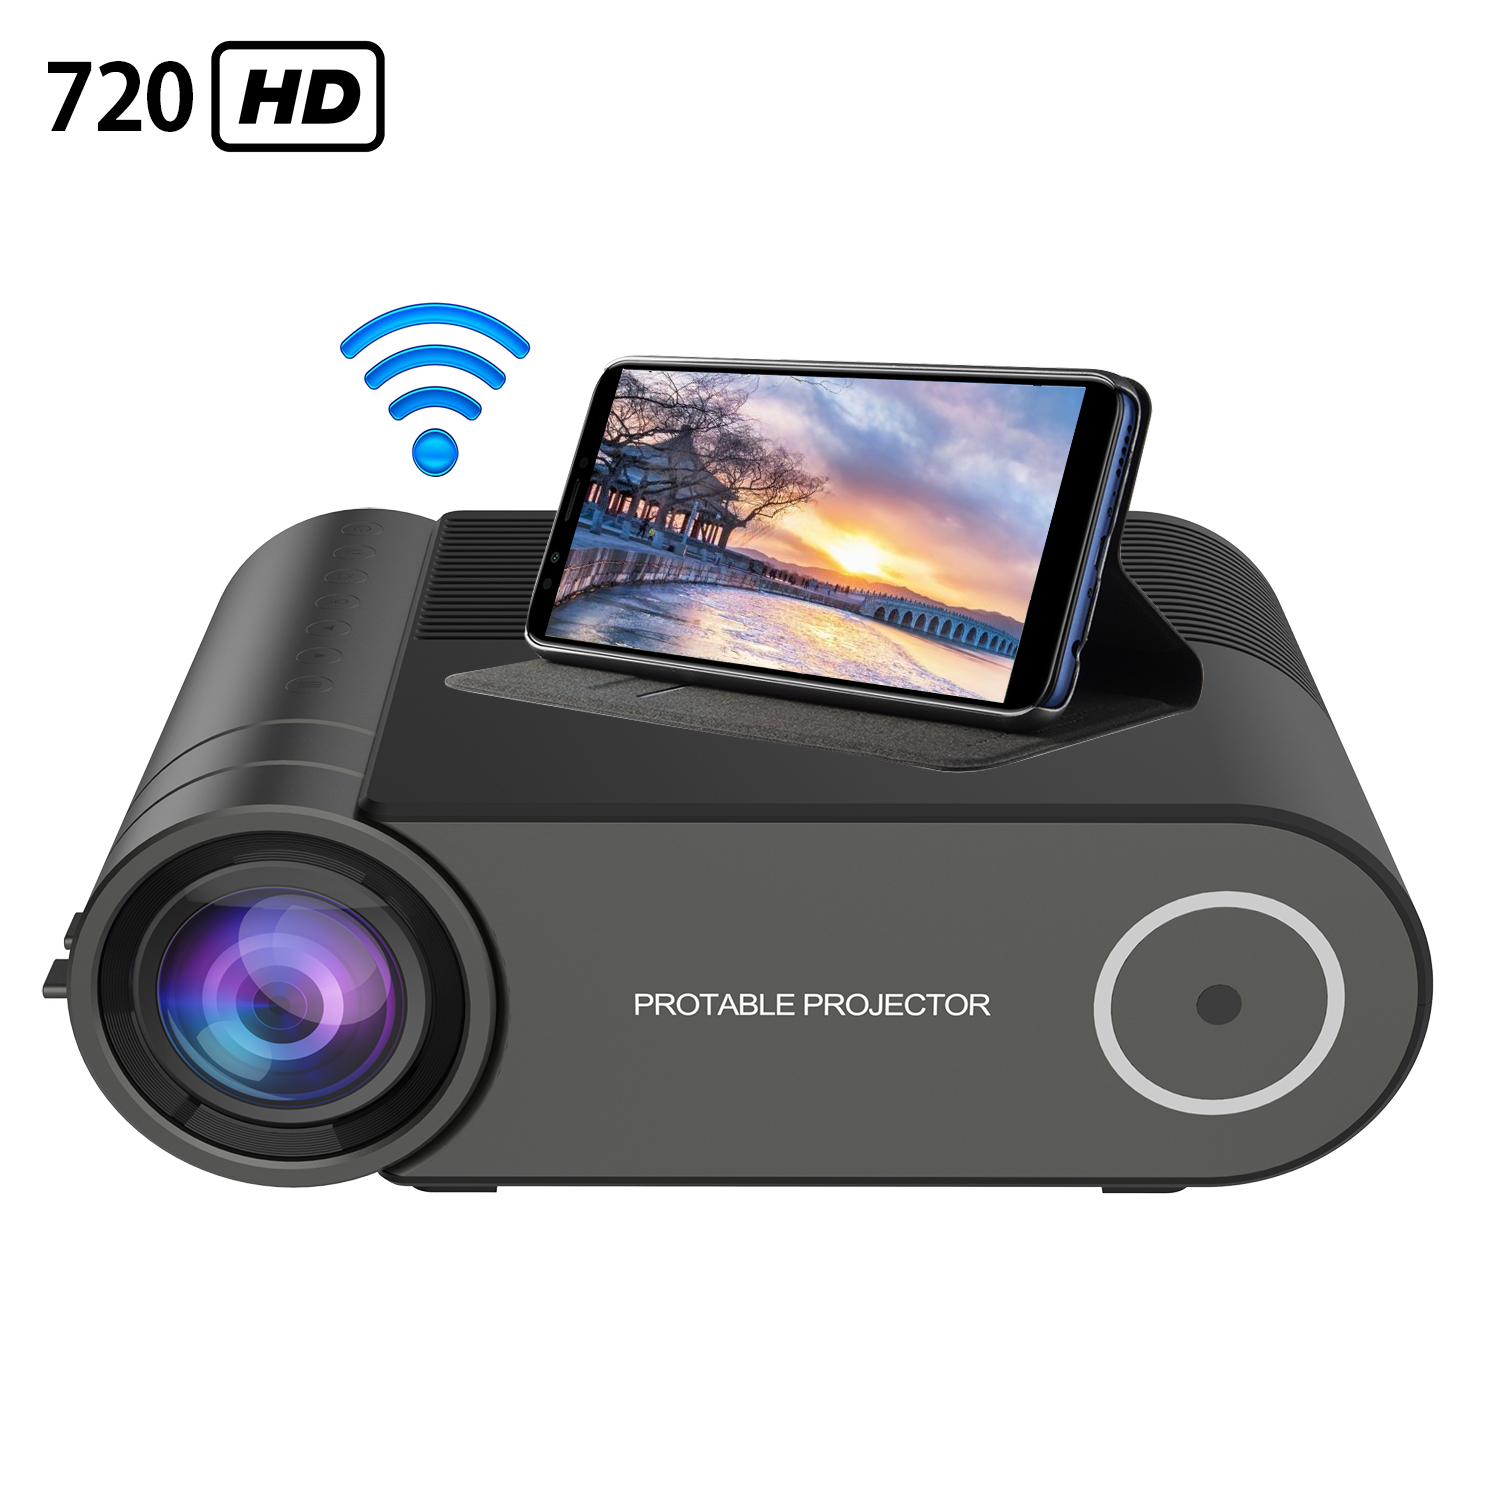 720P Portable LED <font><b>Mini</b></font> <font><b>HD</b></font> <font><b>Projector</b></font> for 1080P Wireless WiFi Multi-Screen Video <font><b>Projector</b></font> with Infrared Remote Control Function image